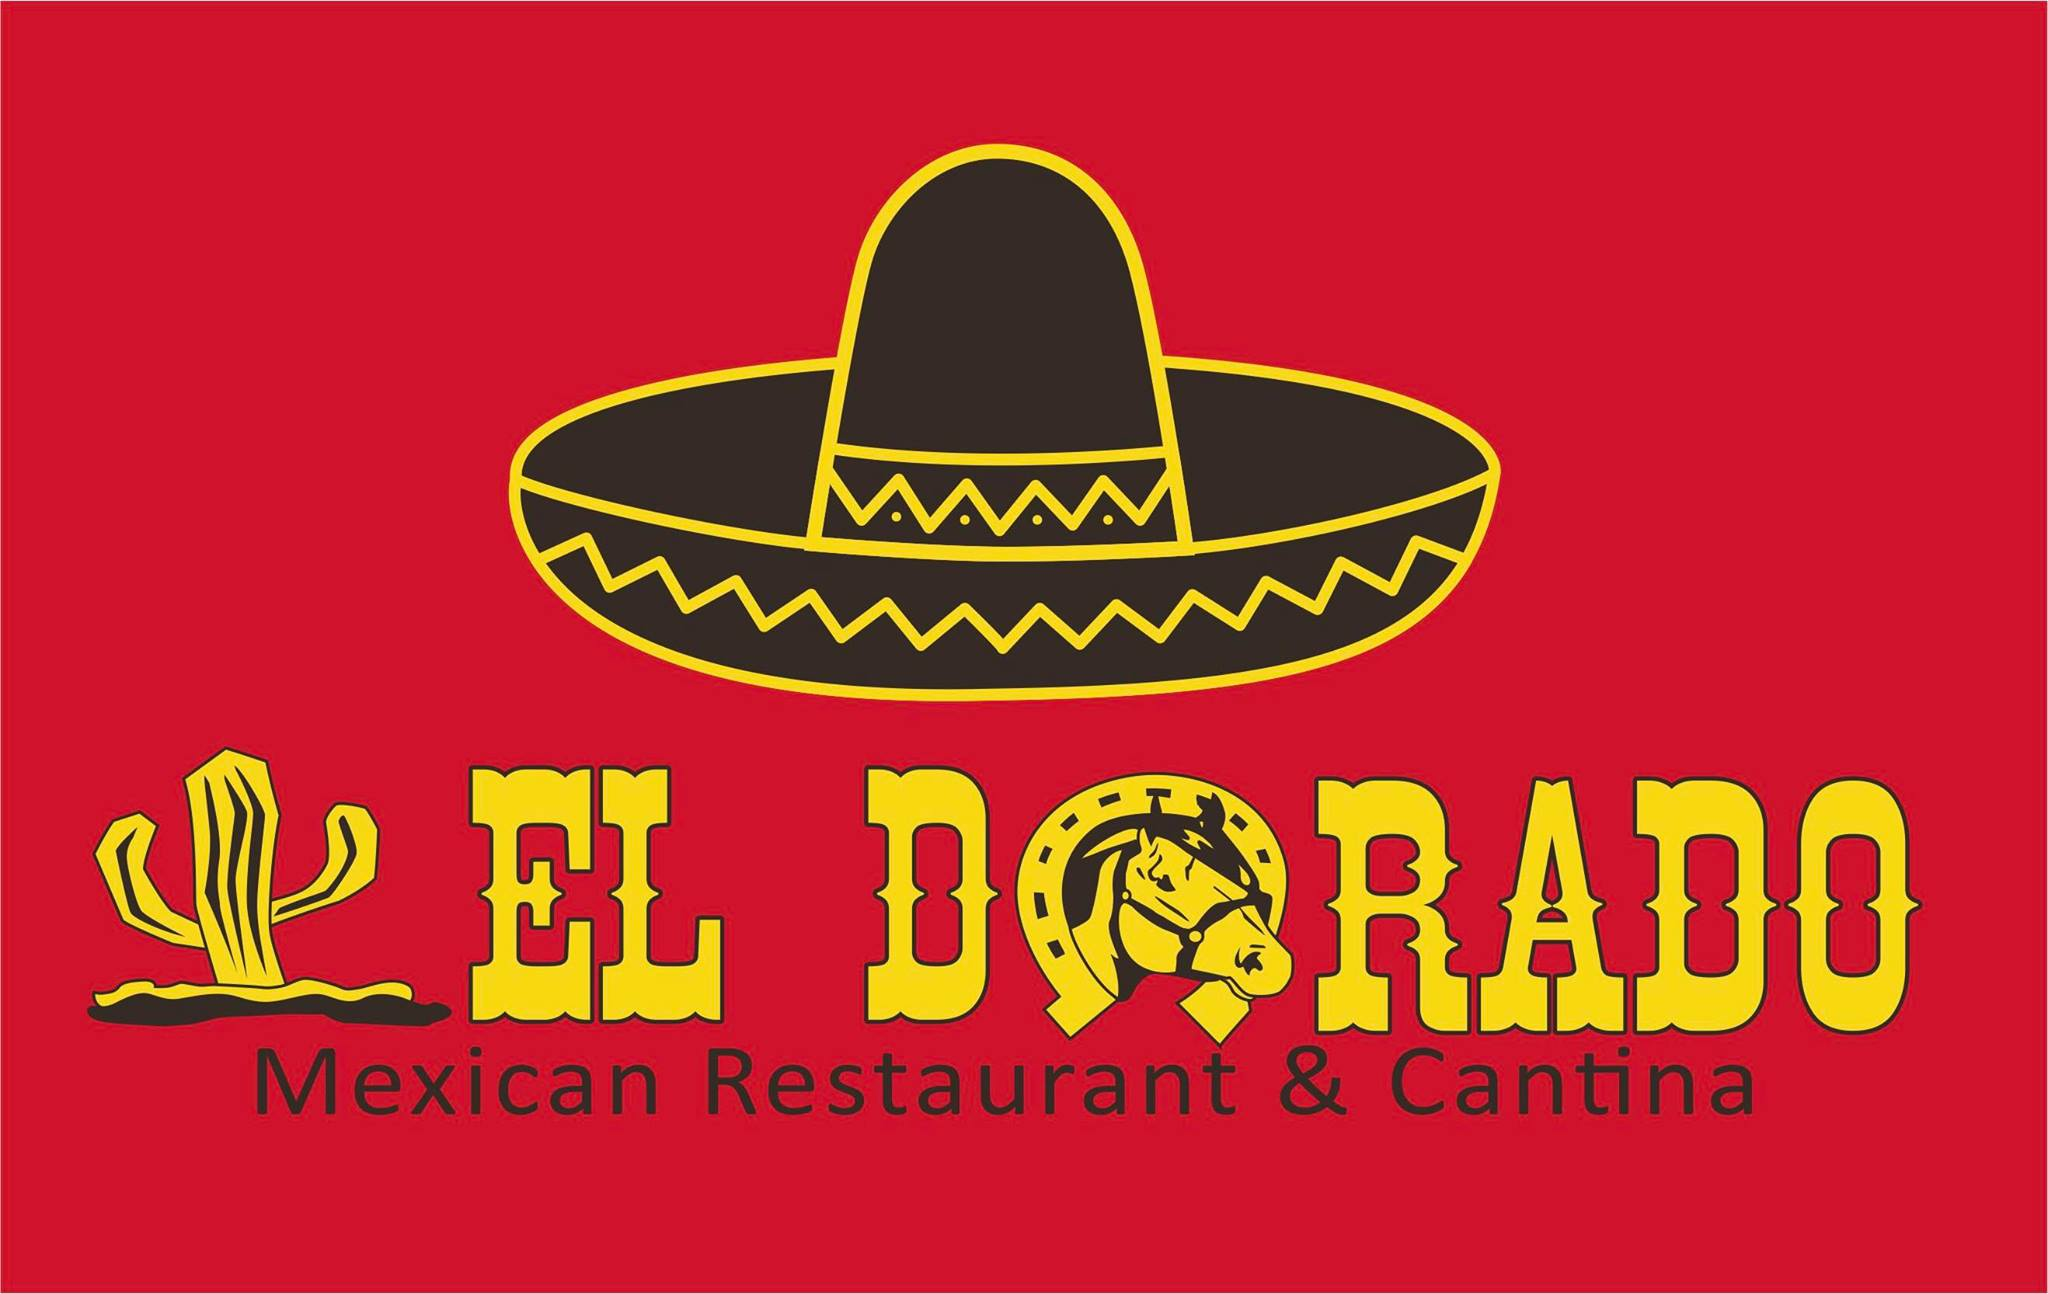 El Dorado Mexican Restaurant and Mexican Cantina